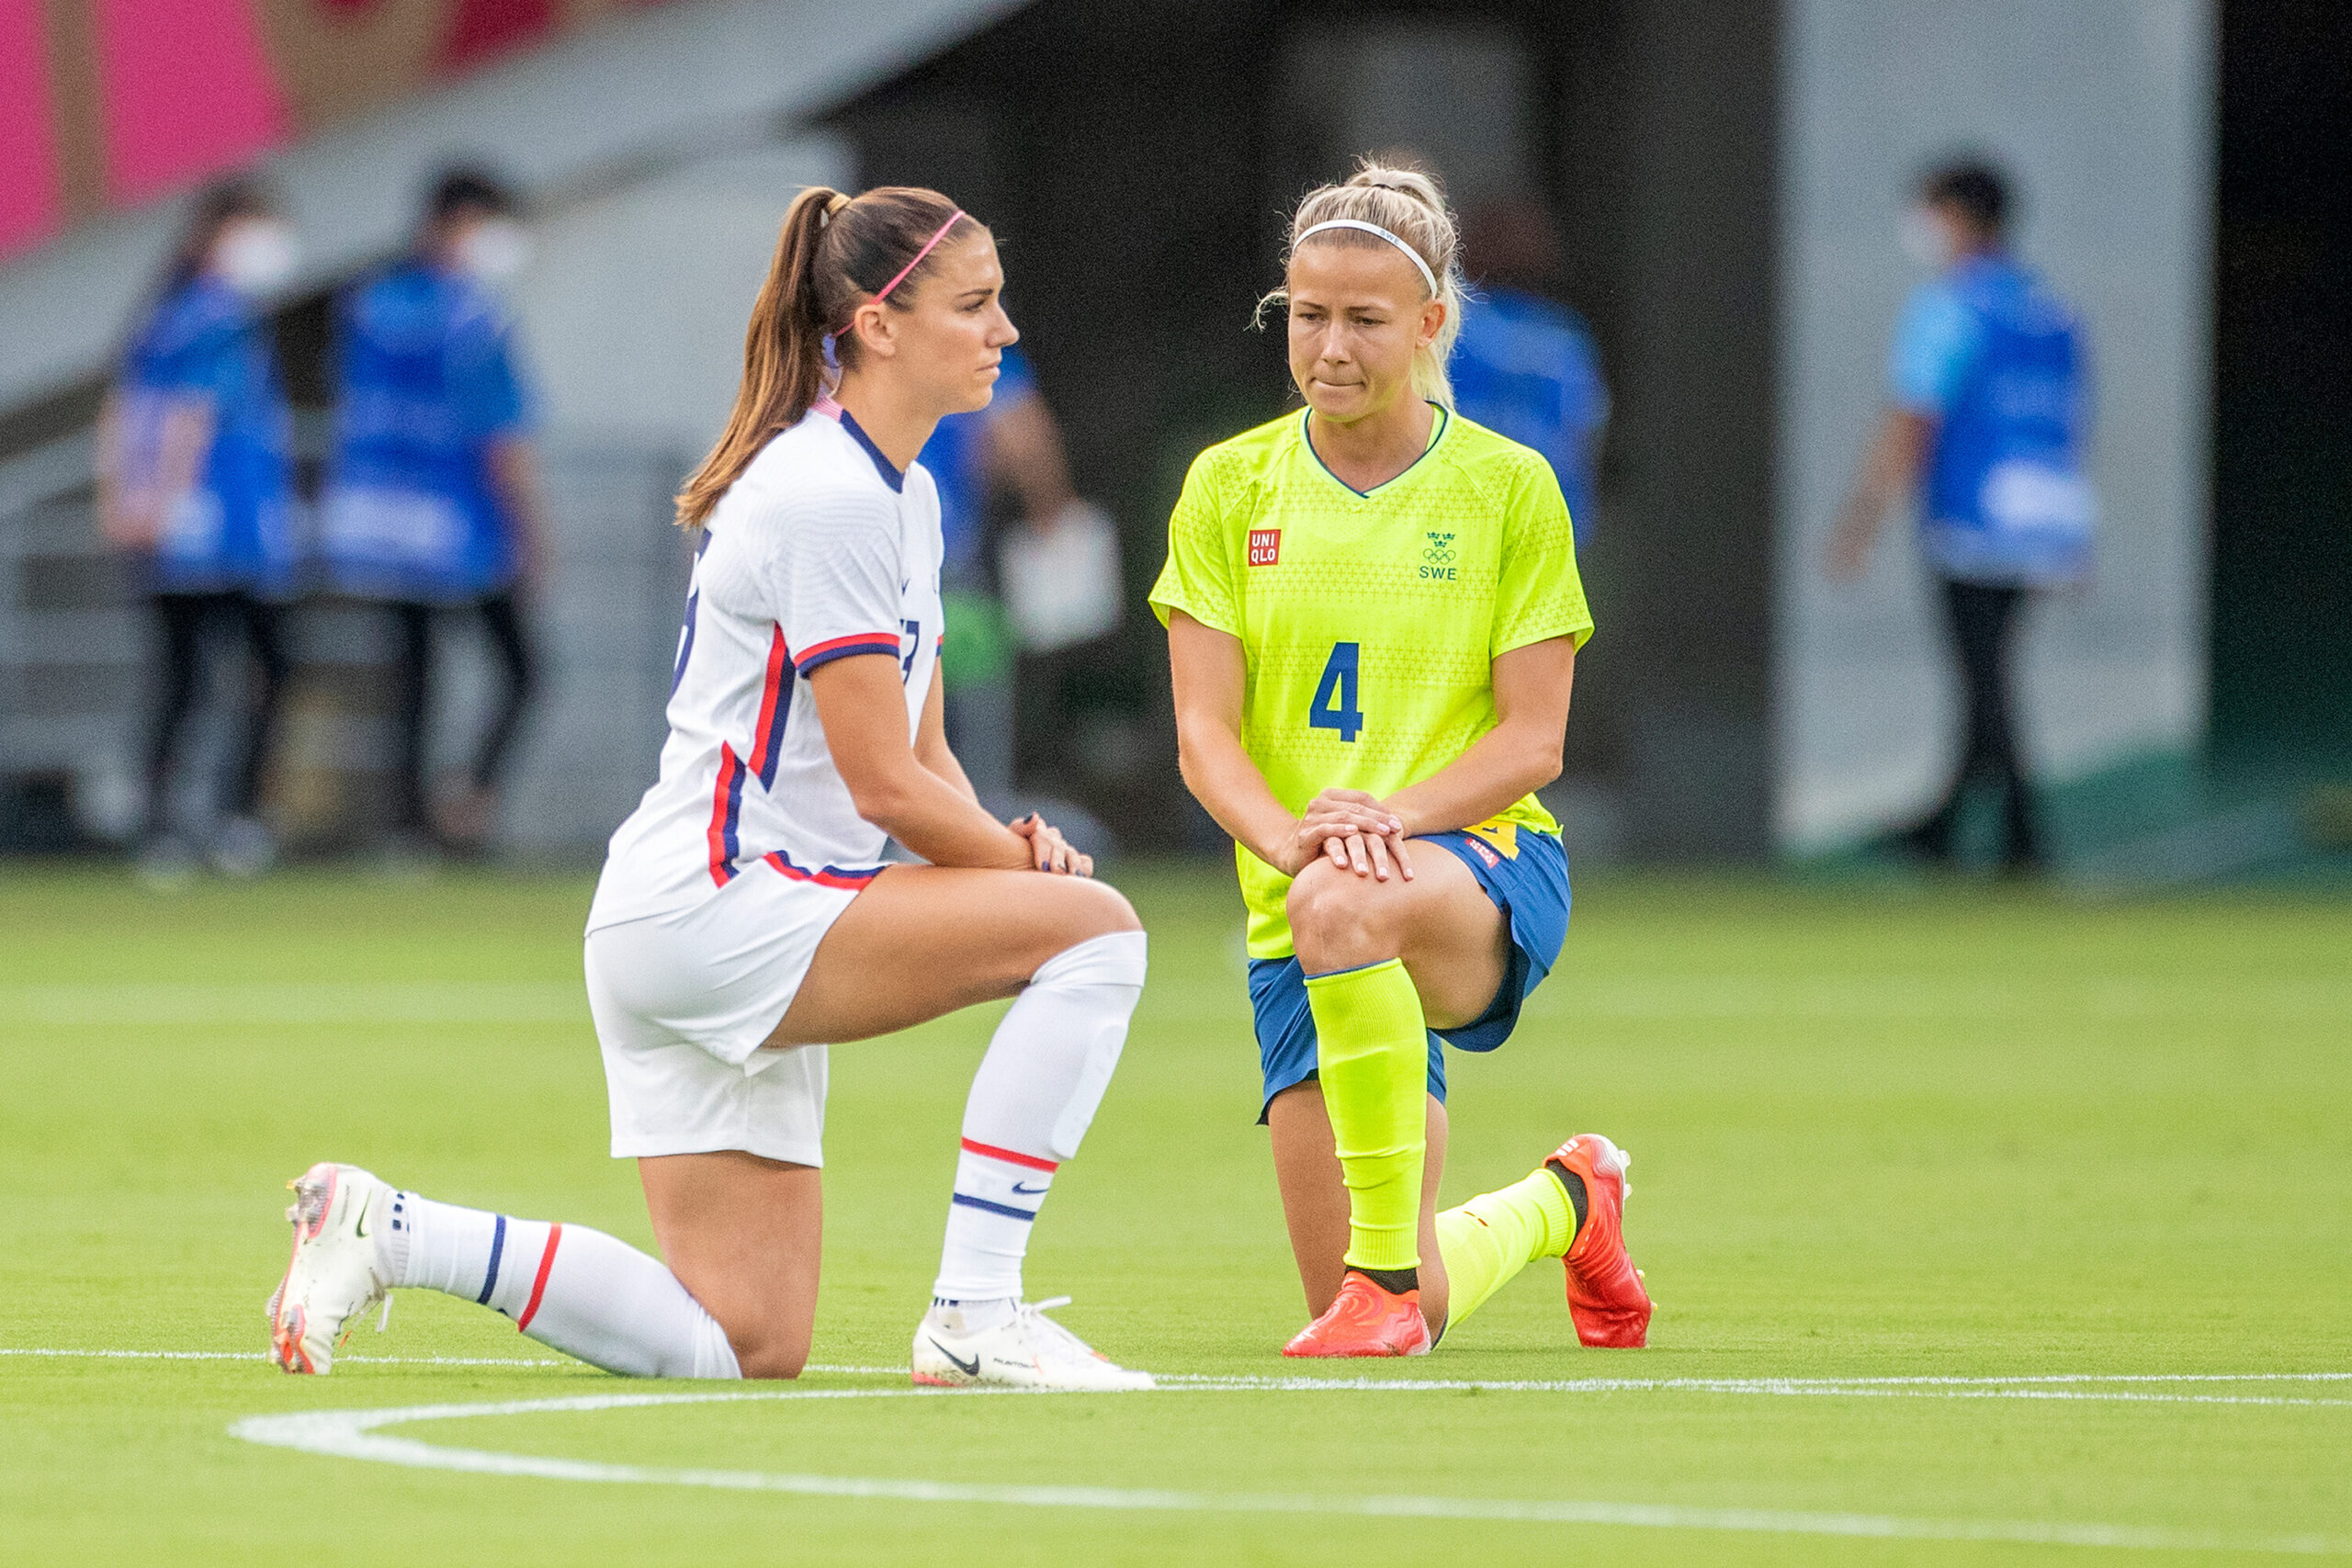 <i>Tim Clayton/Corbis Sport/Getty Images</i><br/>Alex Morgan of the US and Hanna Glas of Sweden take a knee before the start of their match.